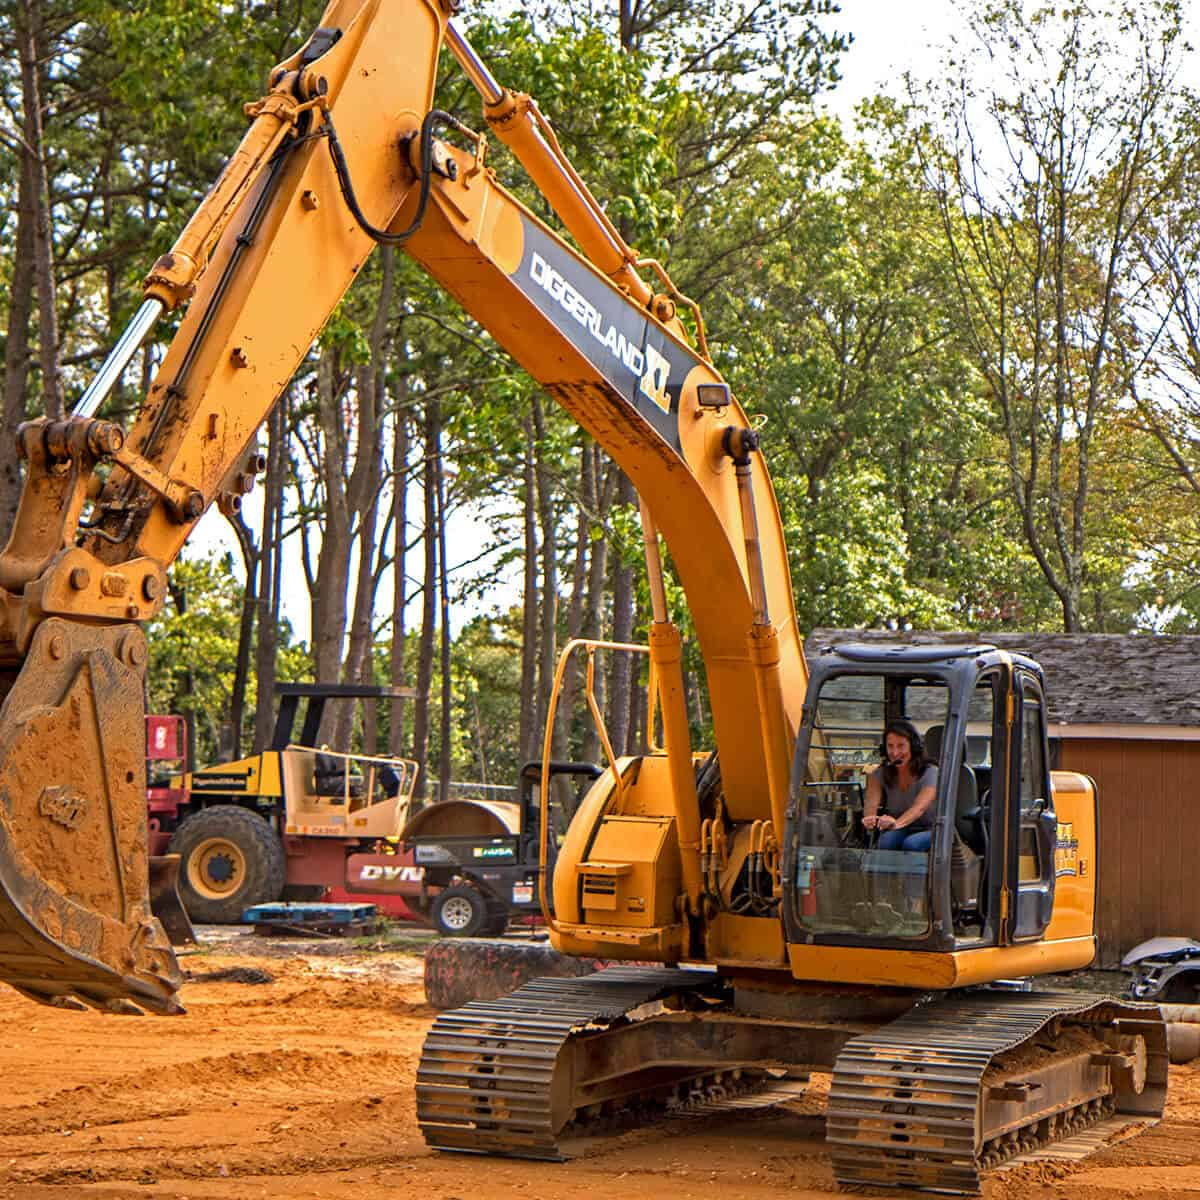 Woman operating an excavator during a team building event